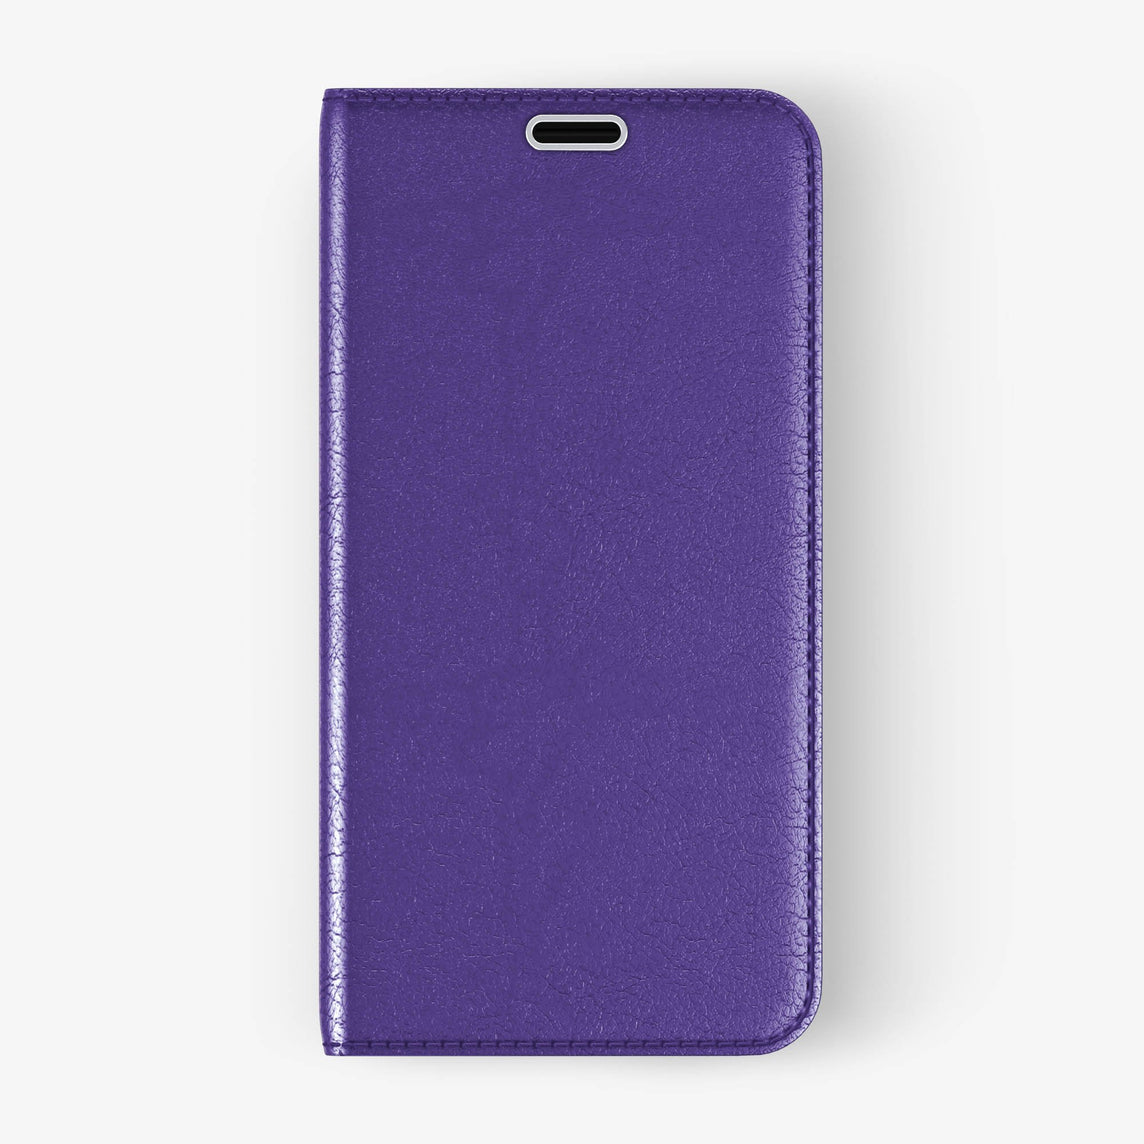 Violet Calfskin iPhone Folio Case for iPhone XS Max finishing stainless steel - Hadoro Luxury Cases -img1